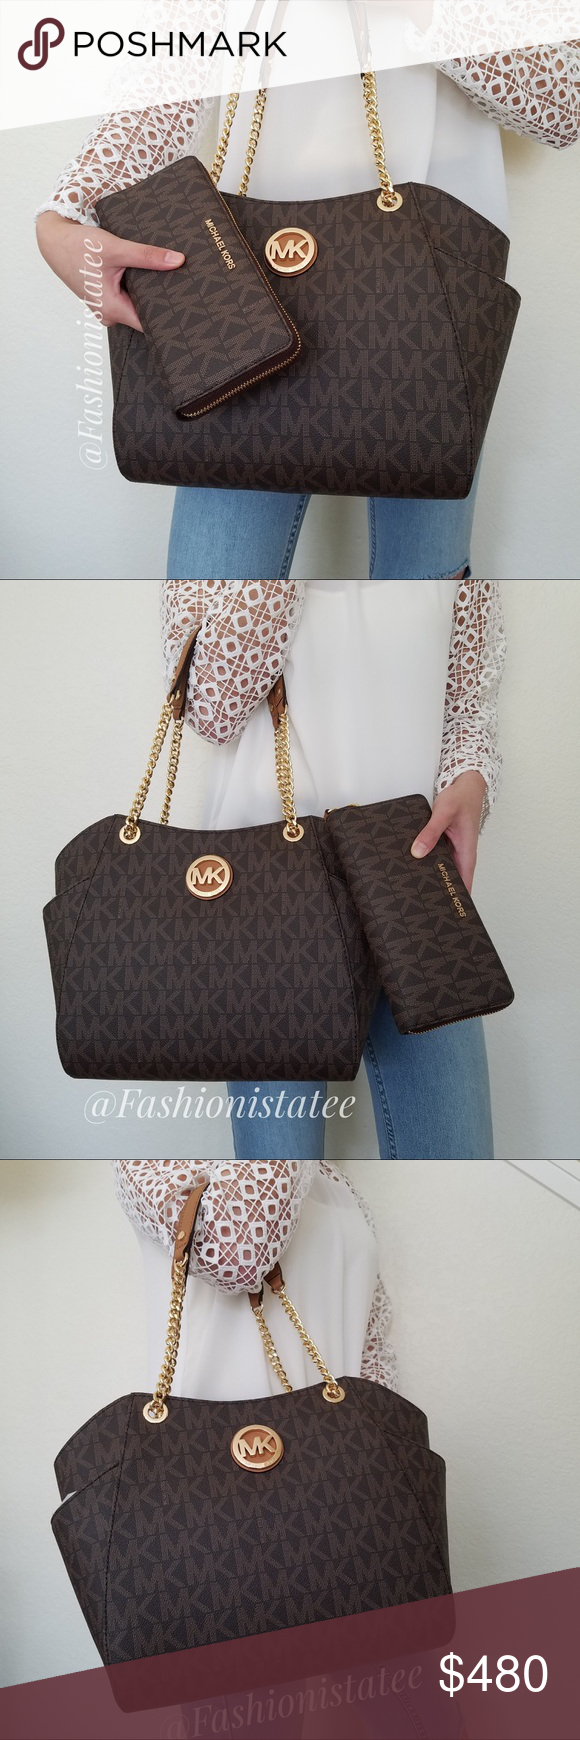 f71ade683c1 Spotted while shopping on Poshmark  NWT MICHAEL KORS JET SET LARGE TOTE SET  WALLET BAG!  poshmark  fashion  shopping  style  Michael Kors  Handbags